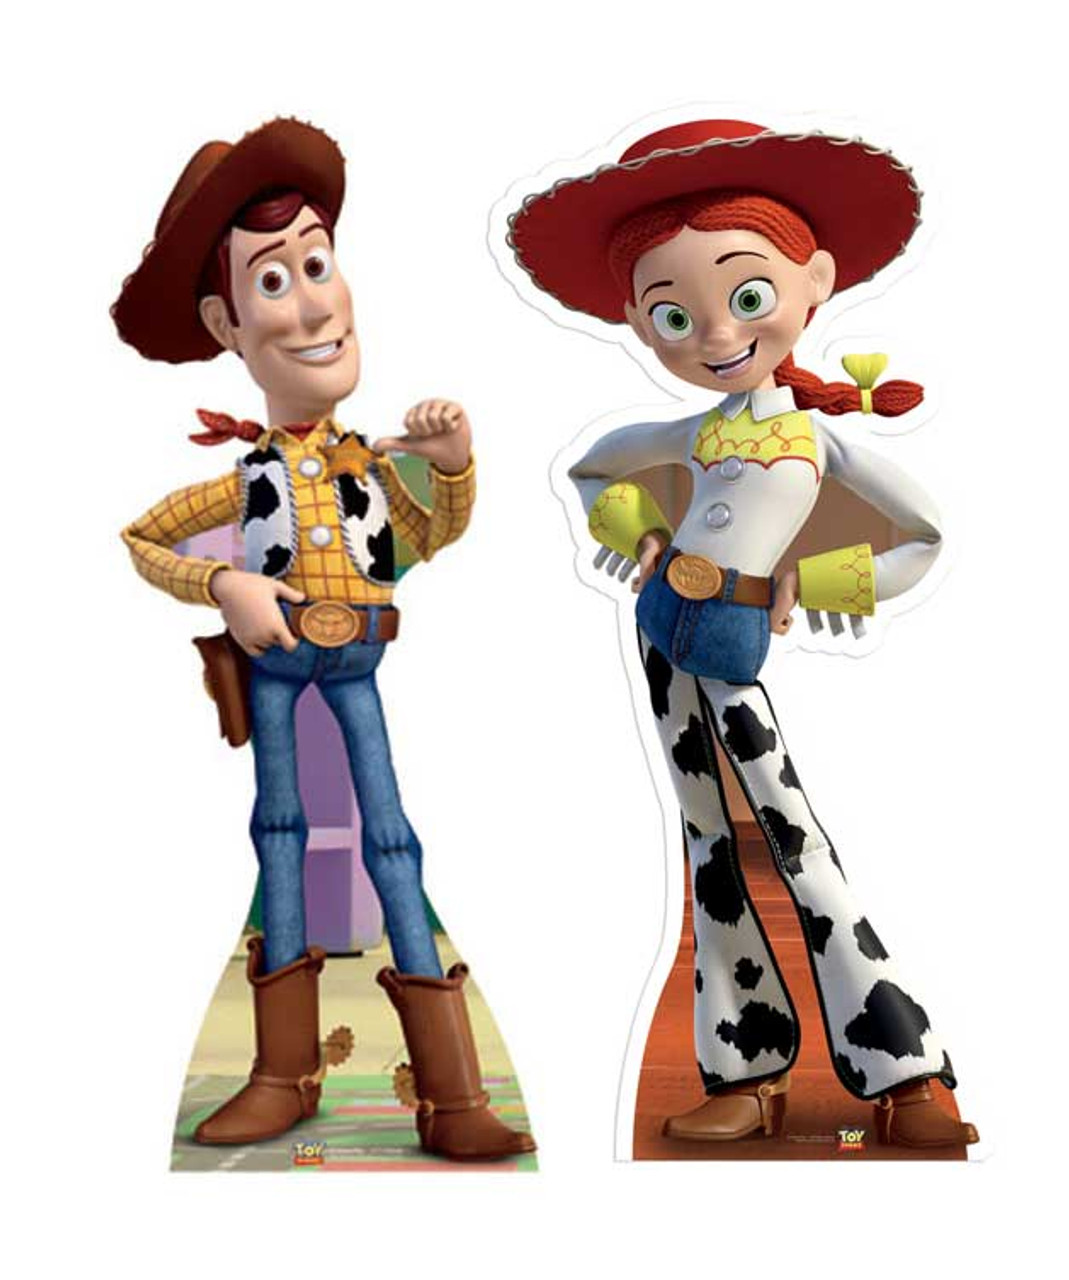 Lifesize Cardboard Cutout Set of Woody and Jessie Toy Story buy ... 7ba6ece0b80